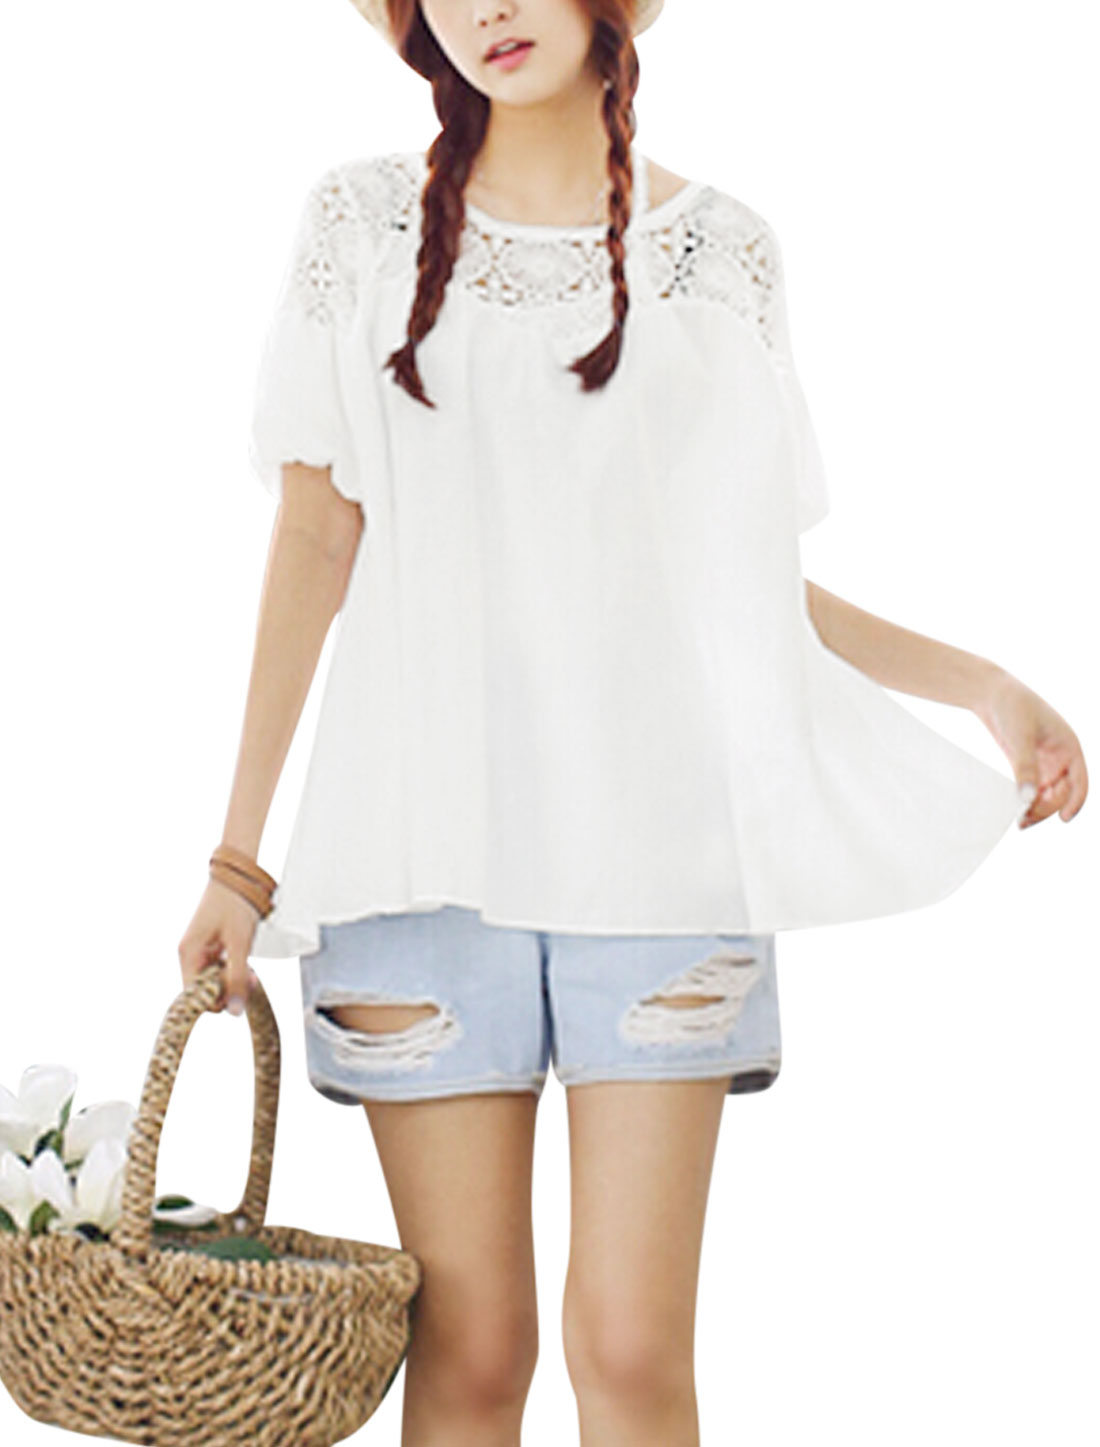 Lady Elastic Cuffs Crochet Splicing Semi Sheer Chiffon Blouse White S